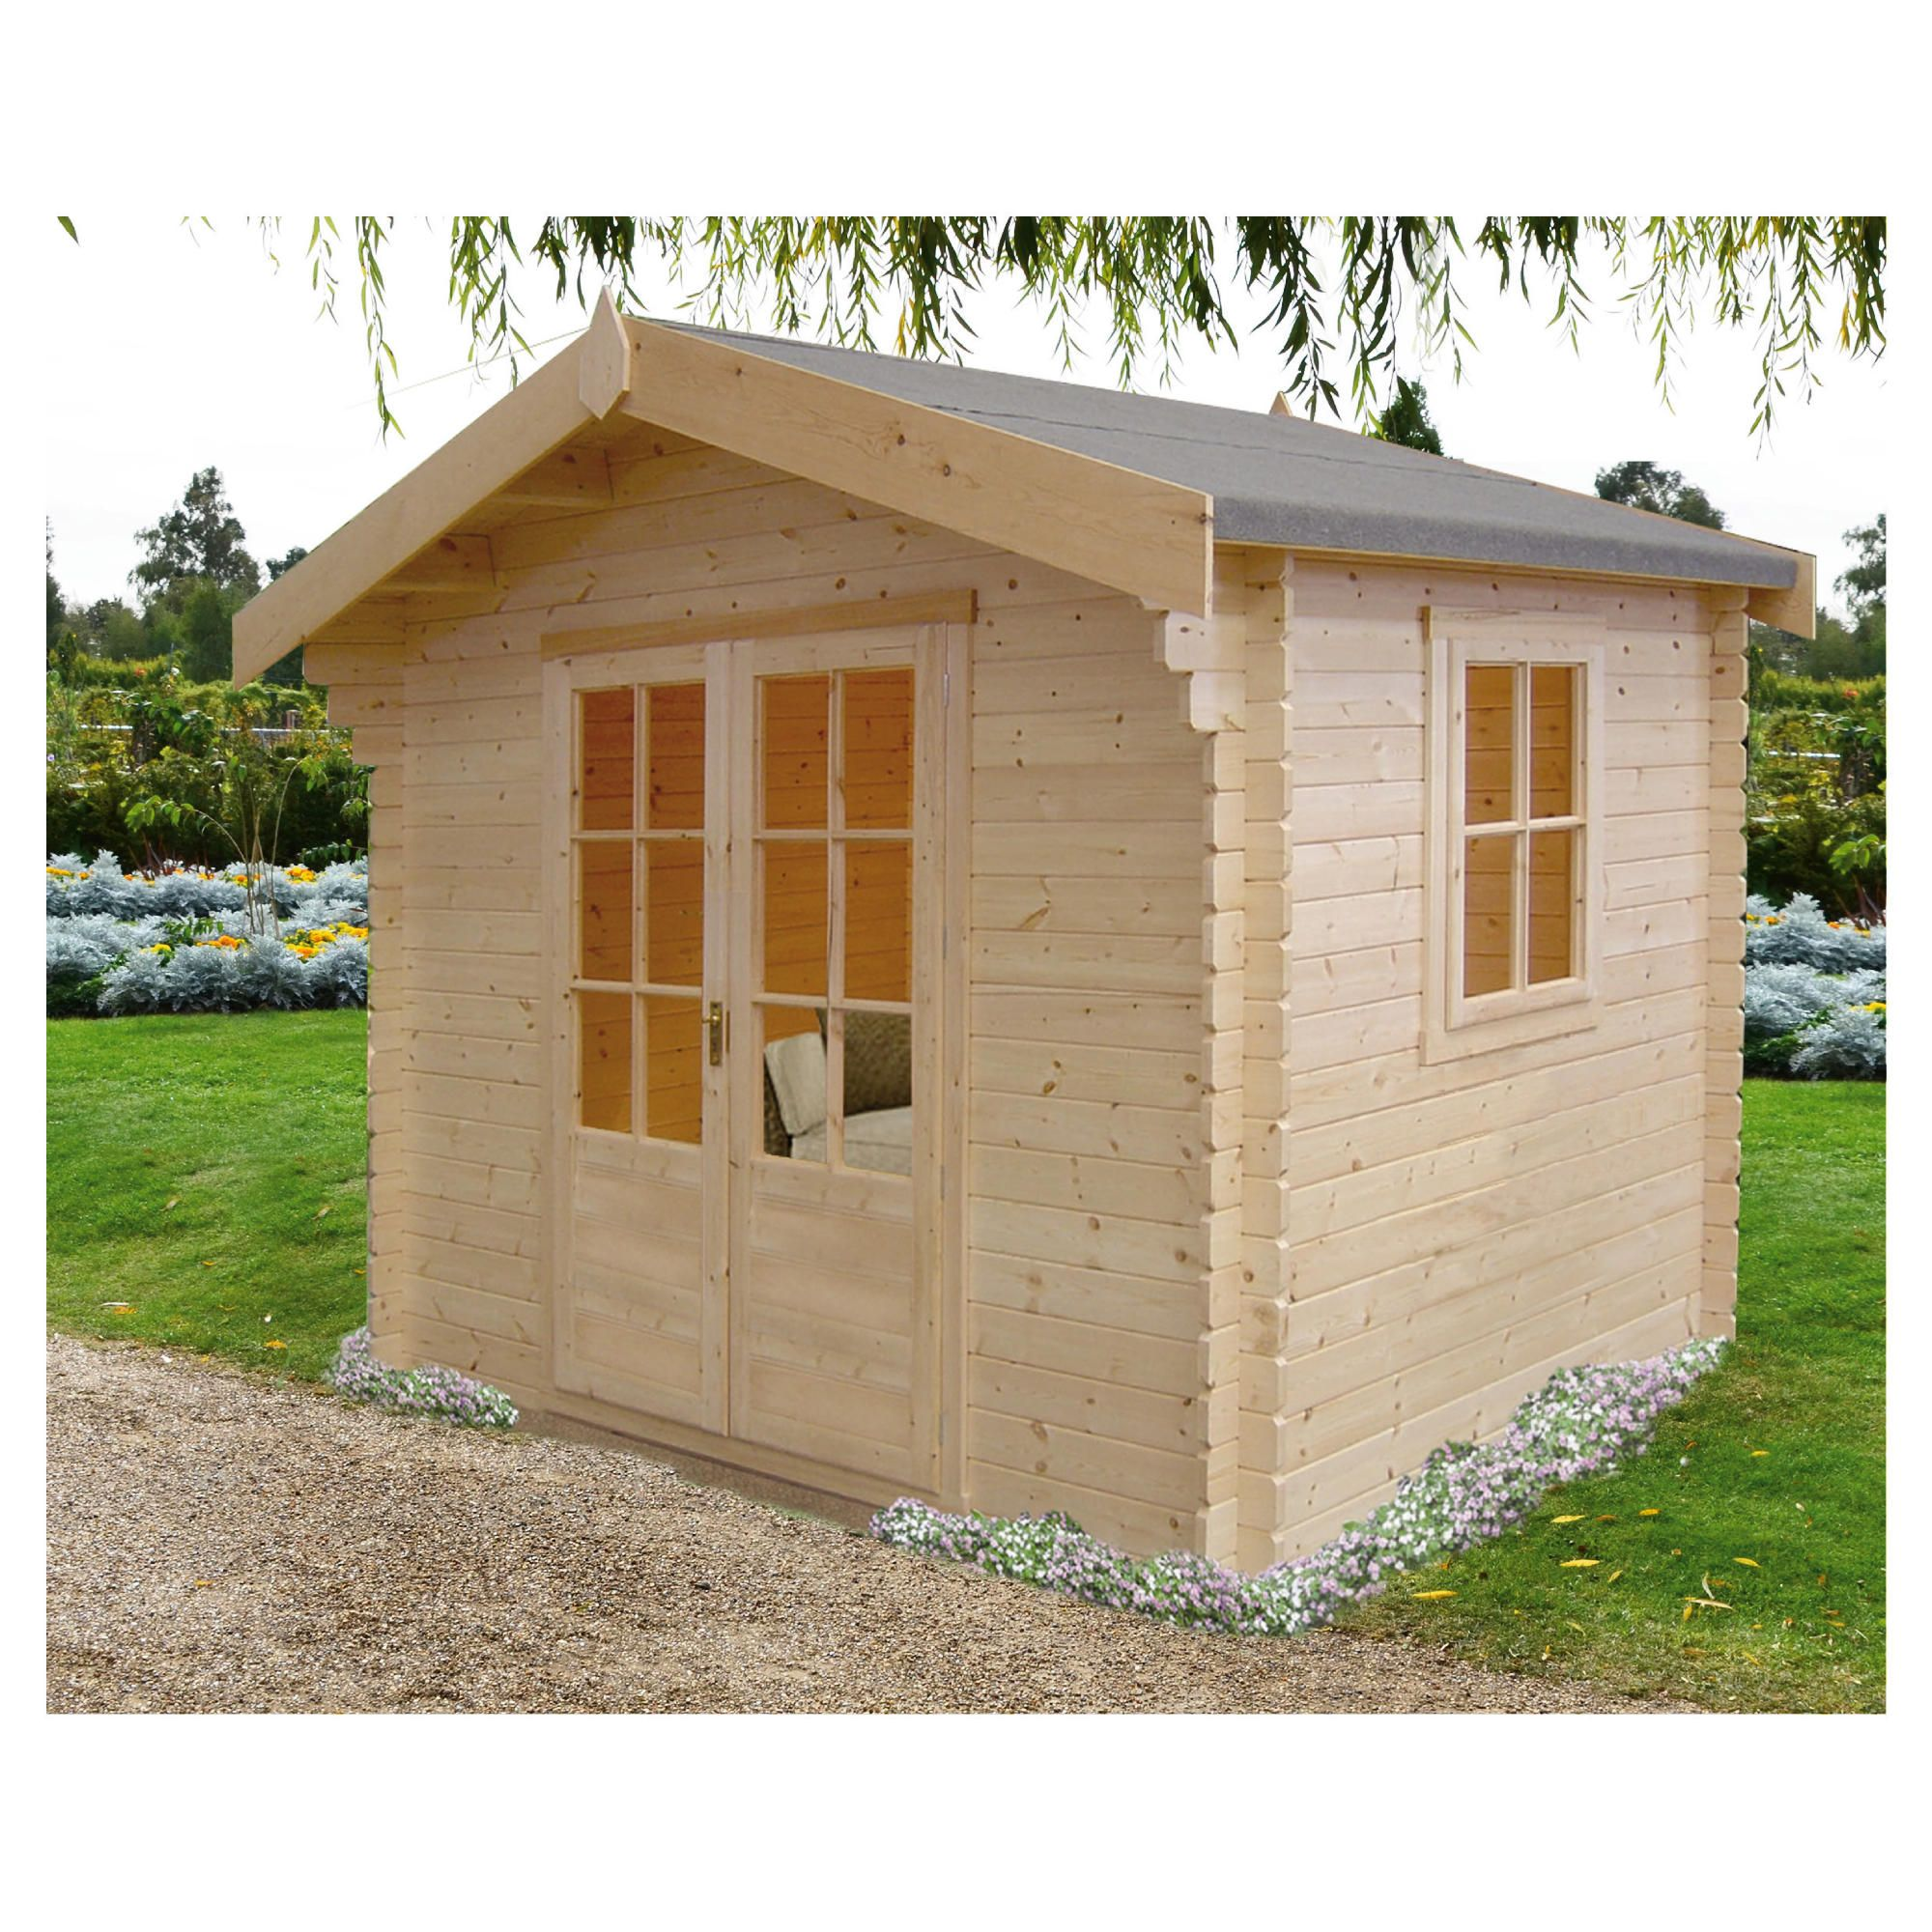 Finewood Fiston Log Cabin 8x8 at Tesco Direct